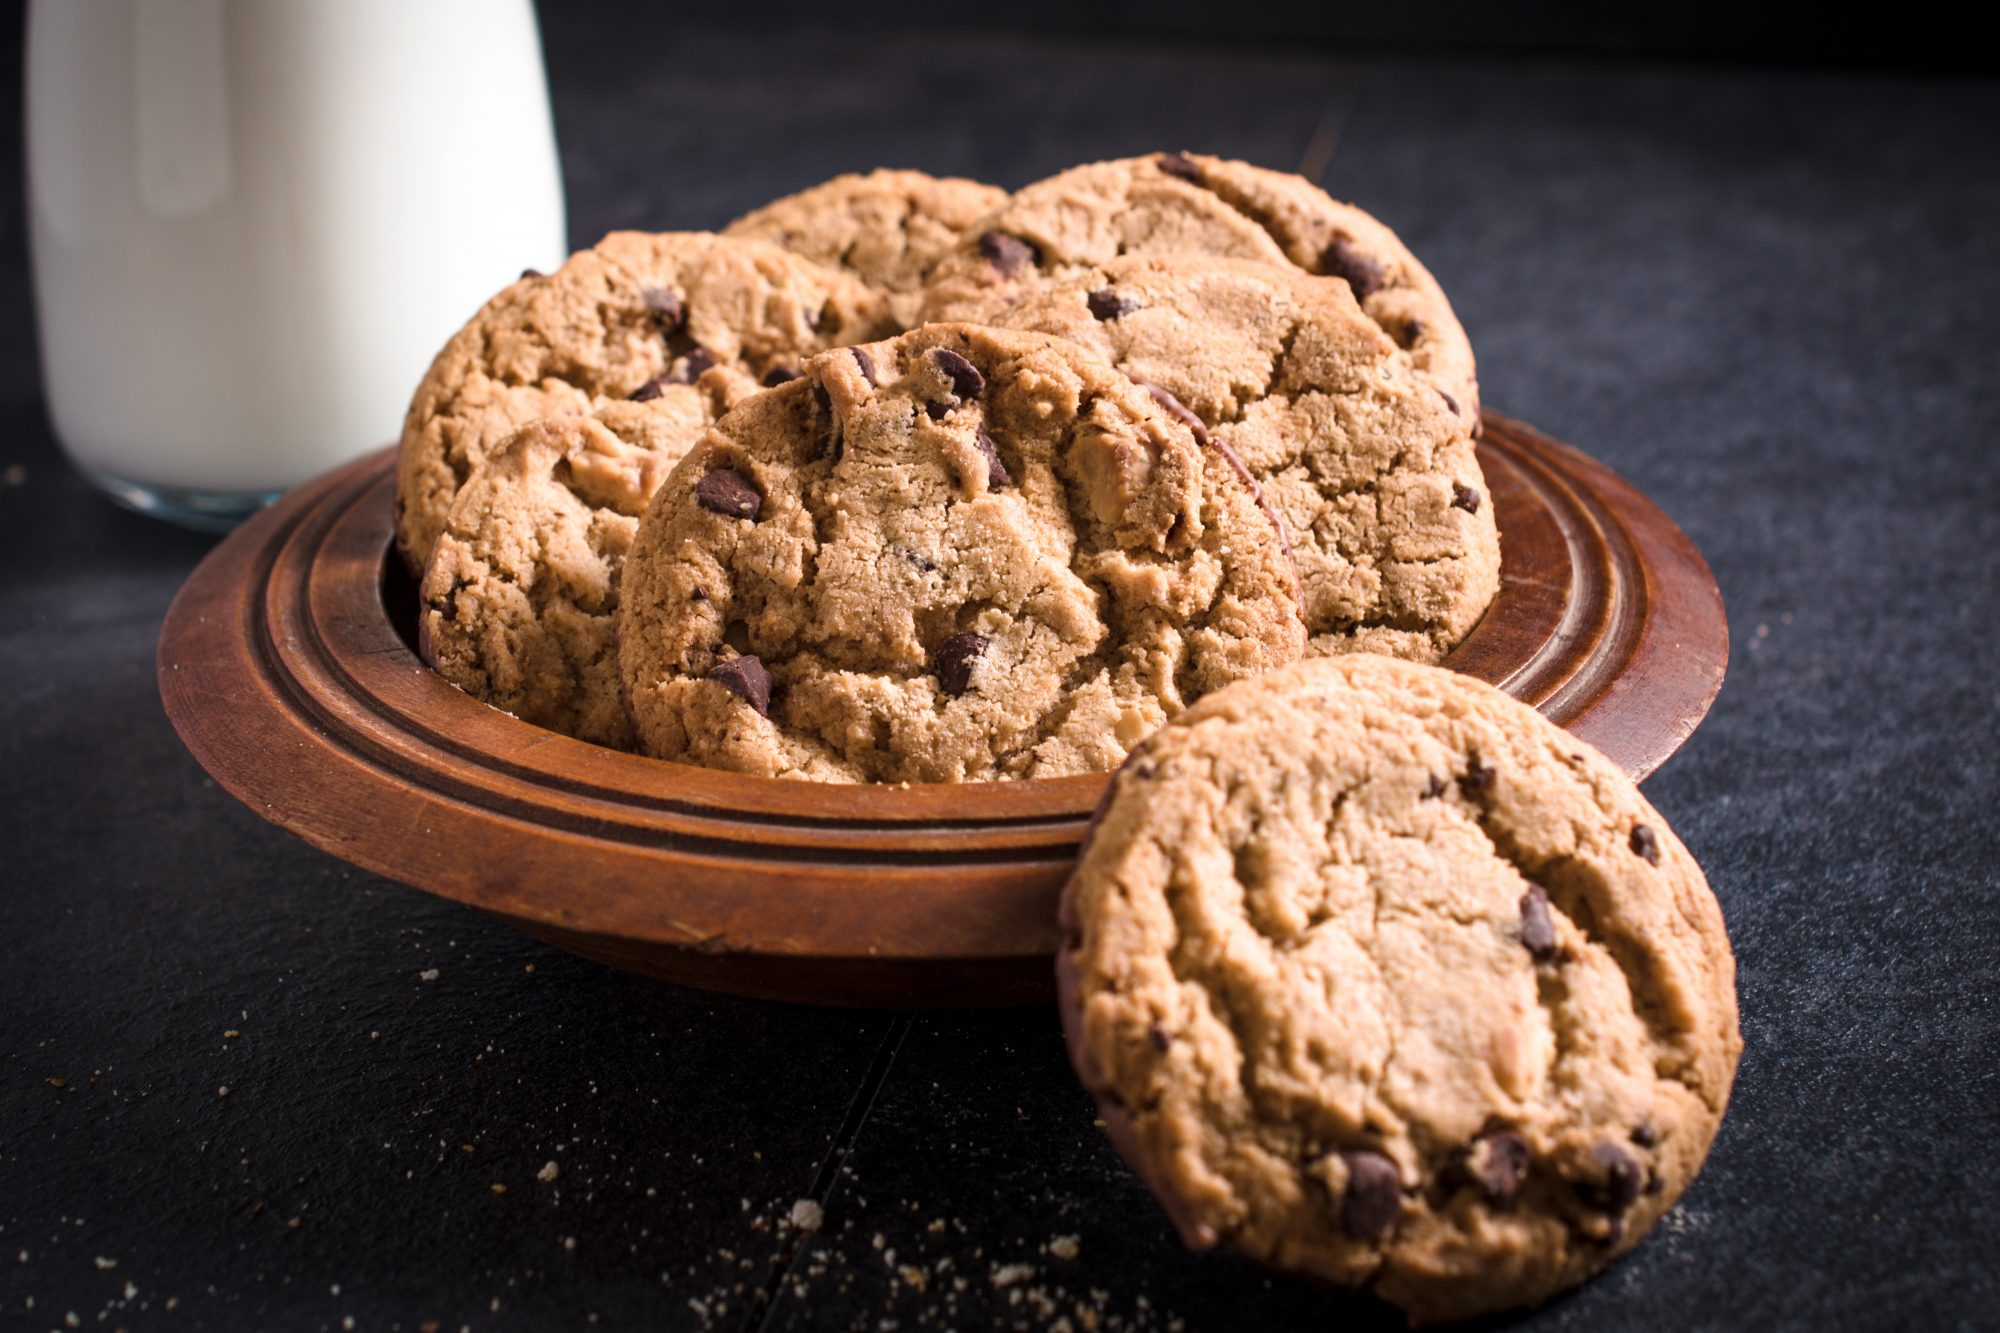 15-Year-Old Dies of Peanut Allergy After Unknowingly Eating Peanut Butter Chips Ahoy Cookie